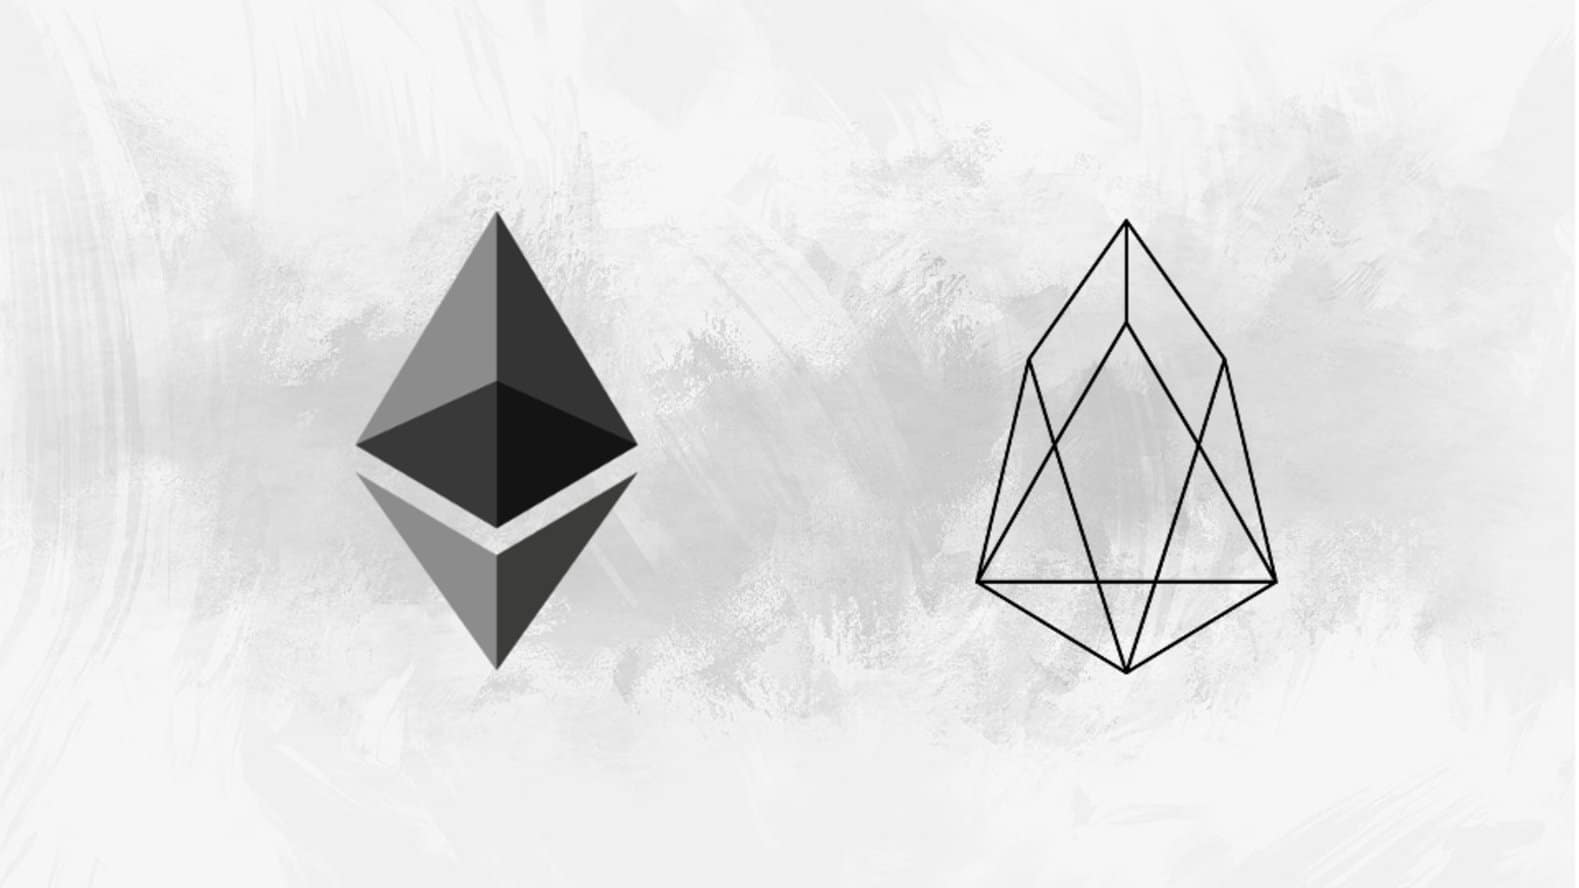 How to migrate a smart contract from Ethereum to EOS